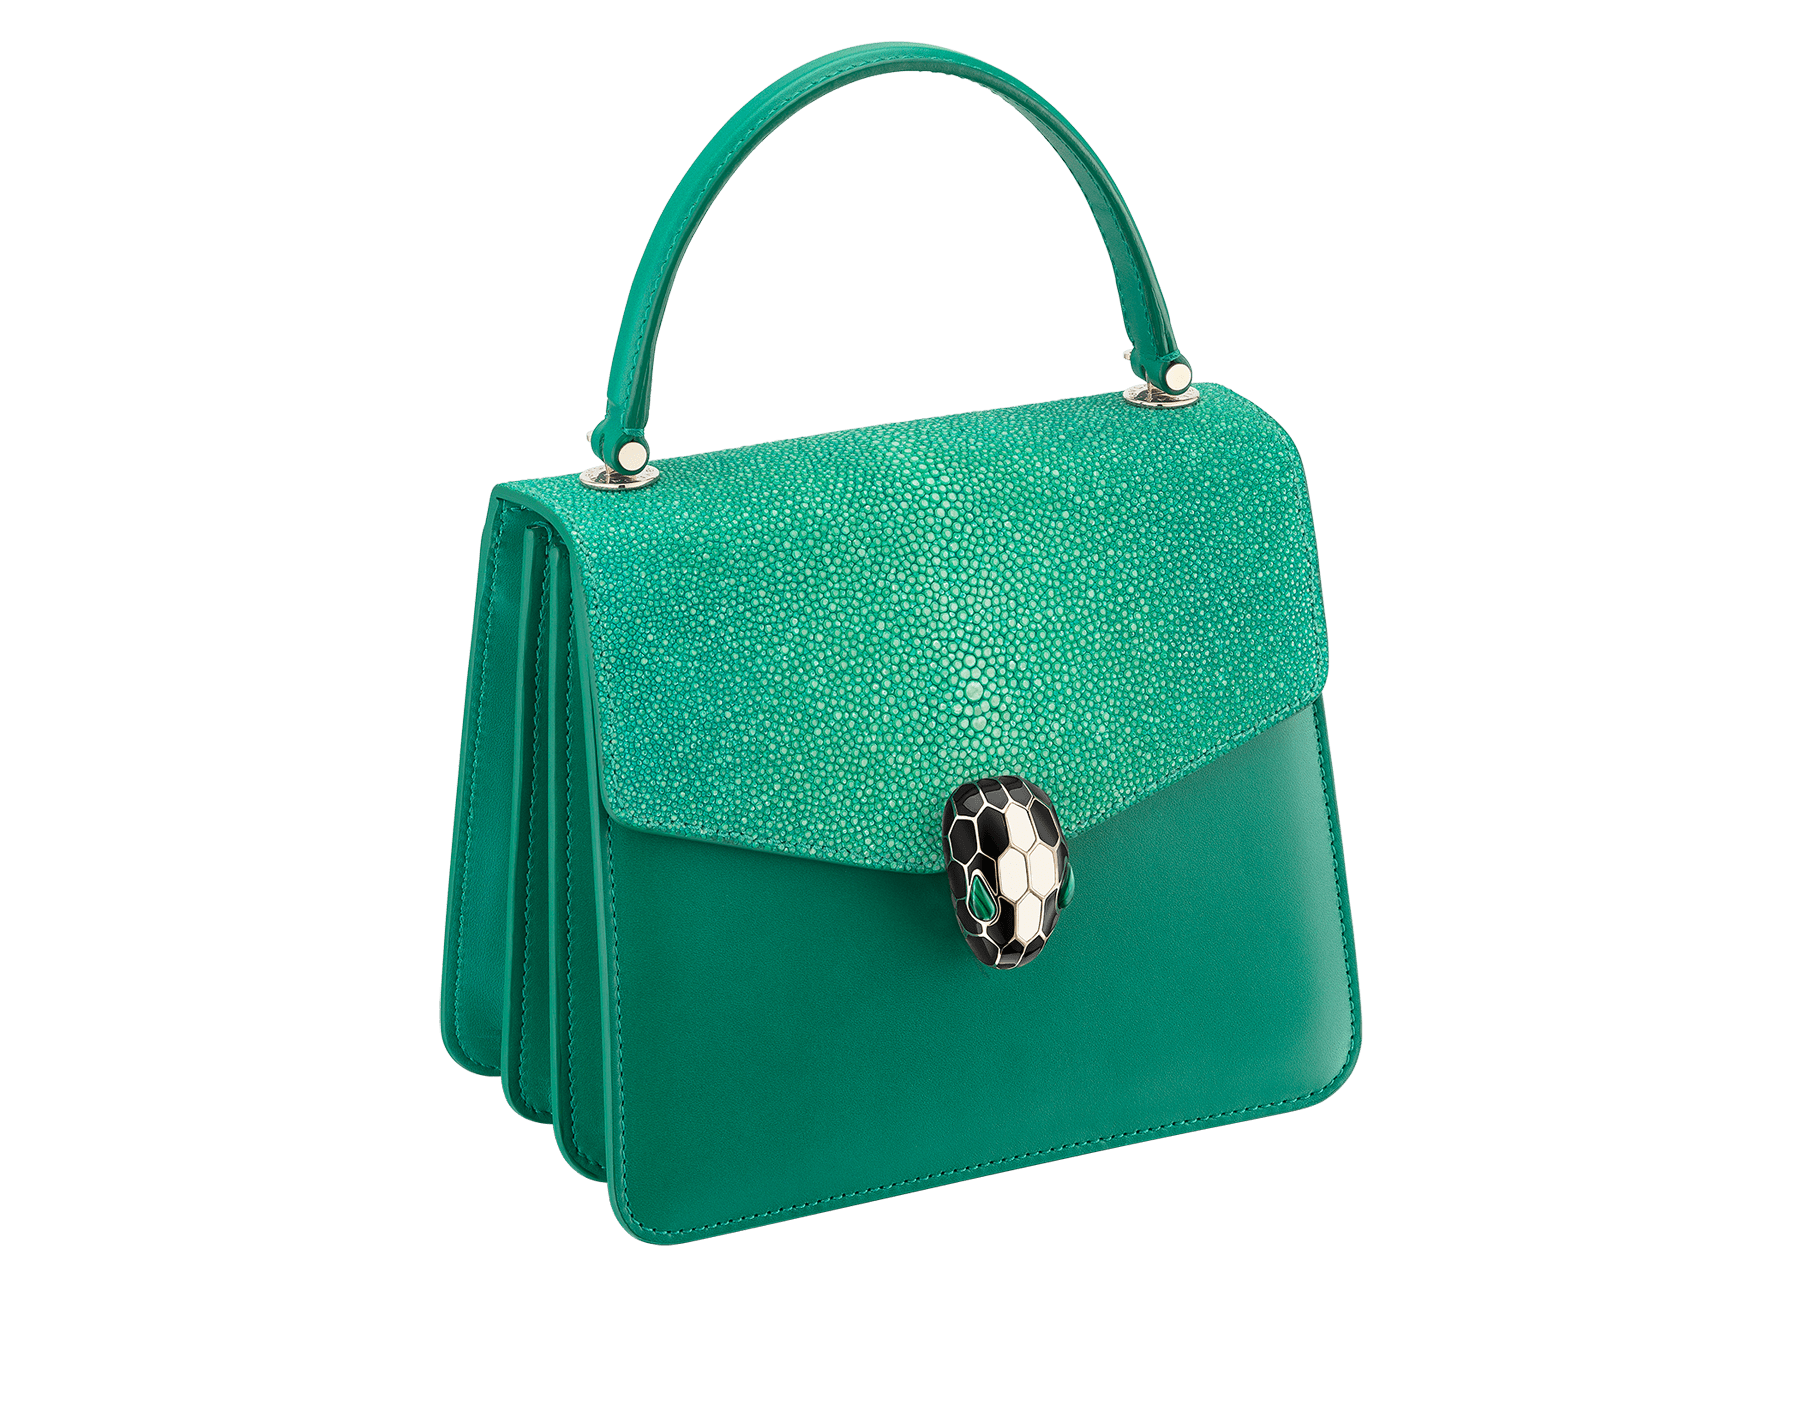 Serpenti Forever crossbody bag in sea star coral galuchat skin and smooth calf leather. Snakehead closure in light gold plated brass decorated with black and white enamel, and green malachite eyes. 752-Ga image 2